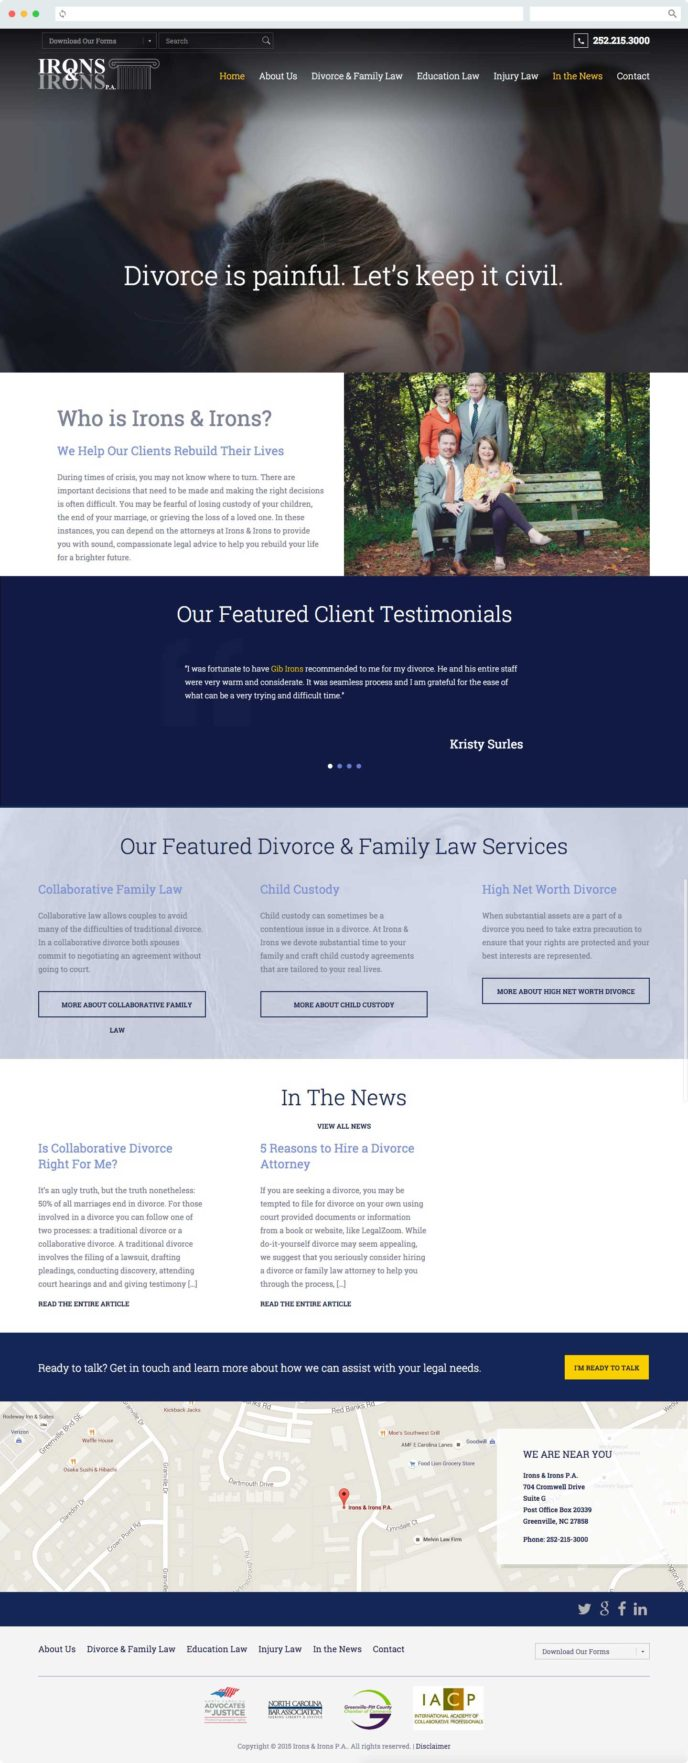 Irons & Irons Law Firm Website Design - TheeDesign